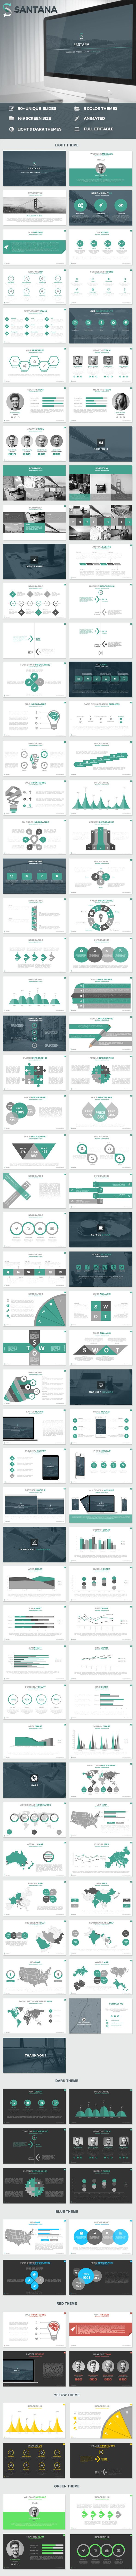 Santana Powerpoint Presentation Template. Download here: http://graphicriver.net/item/santana_powerpoint_presentation_template/15194061?ref=ksioks